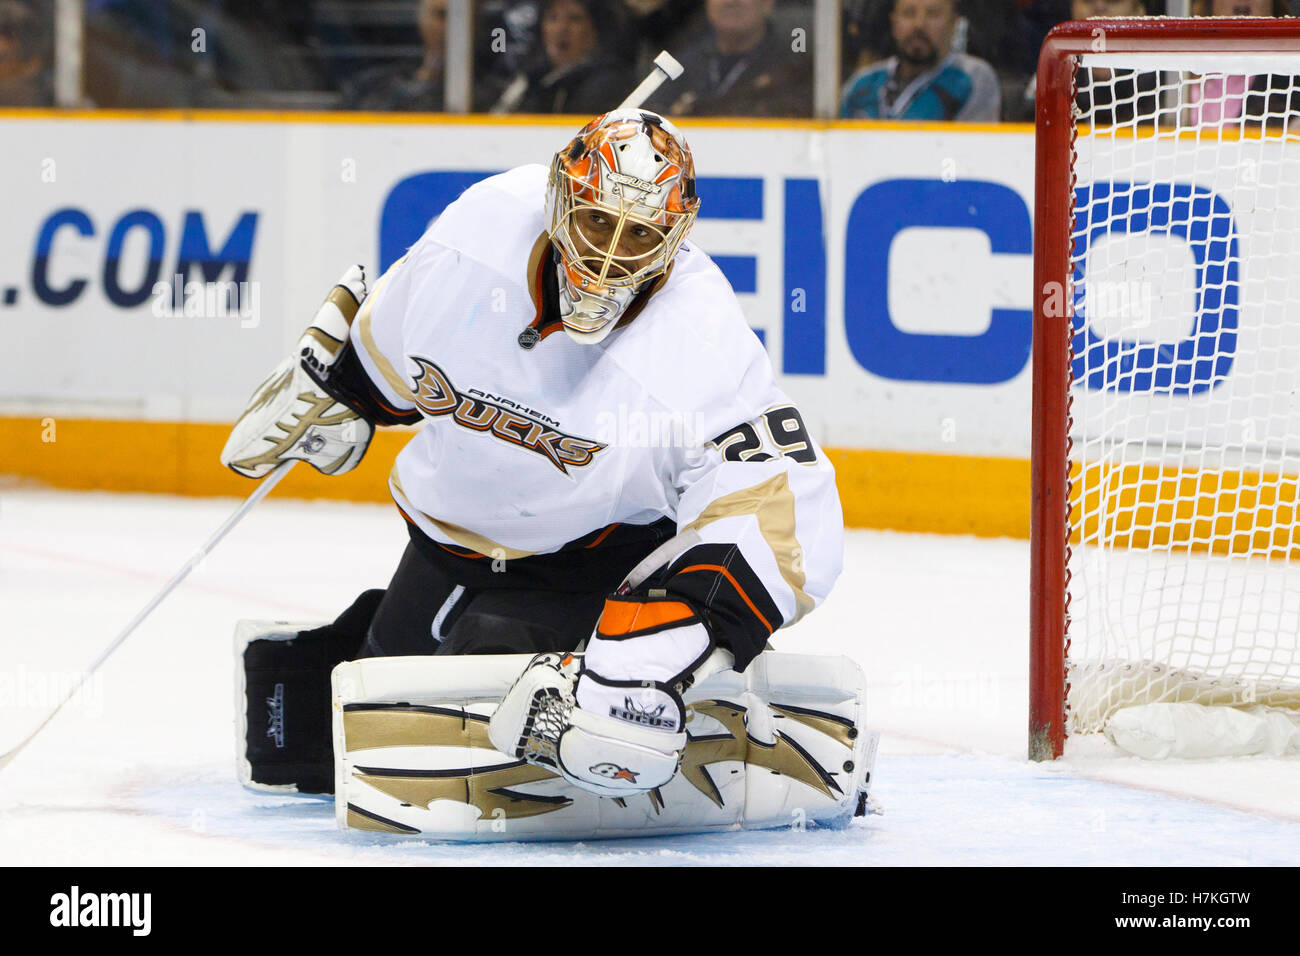 April 2, 2011; San Jose, CA, USA;  Anaheim Ducks goalie Ray Emery (29) makes a save against the San Jose Sharks - Stock Image